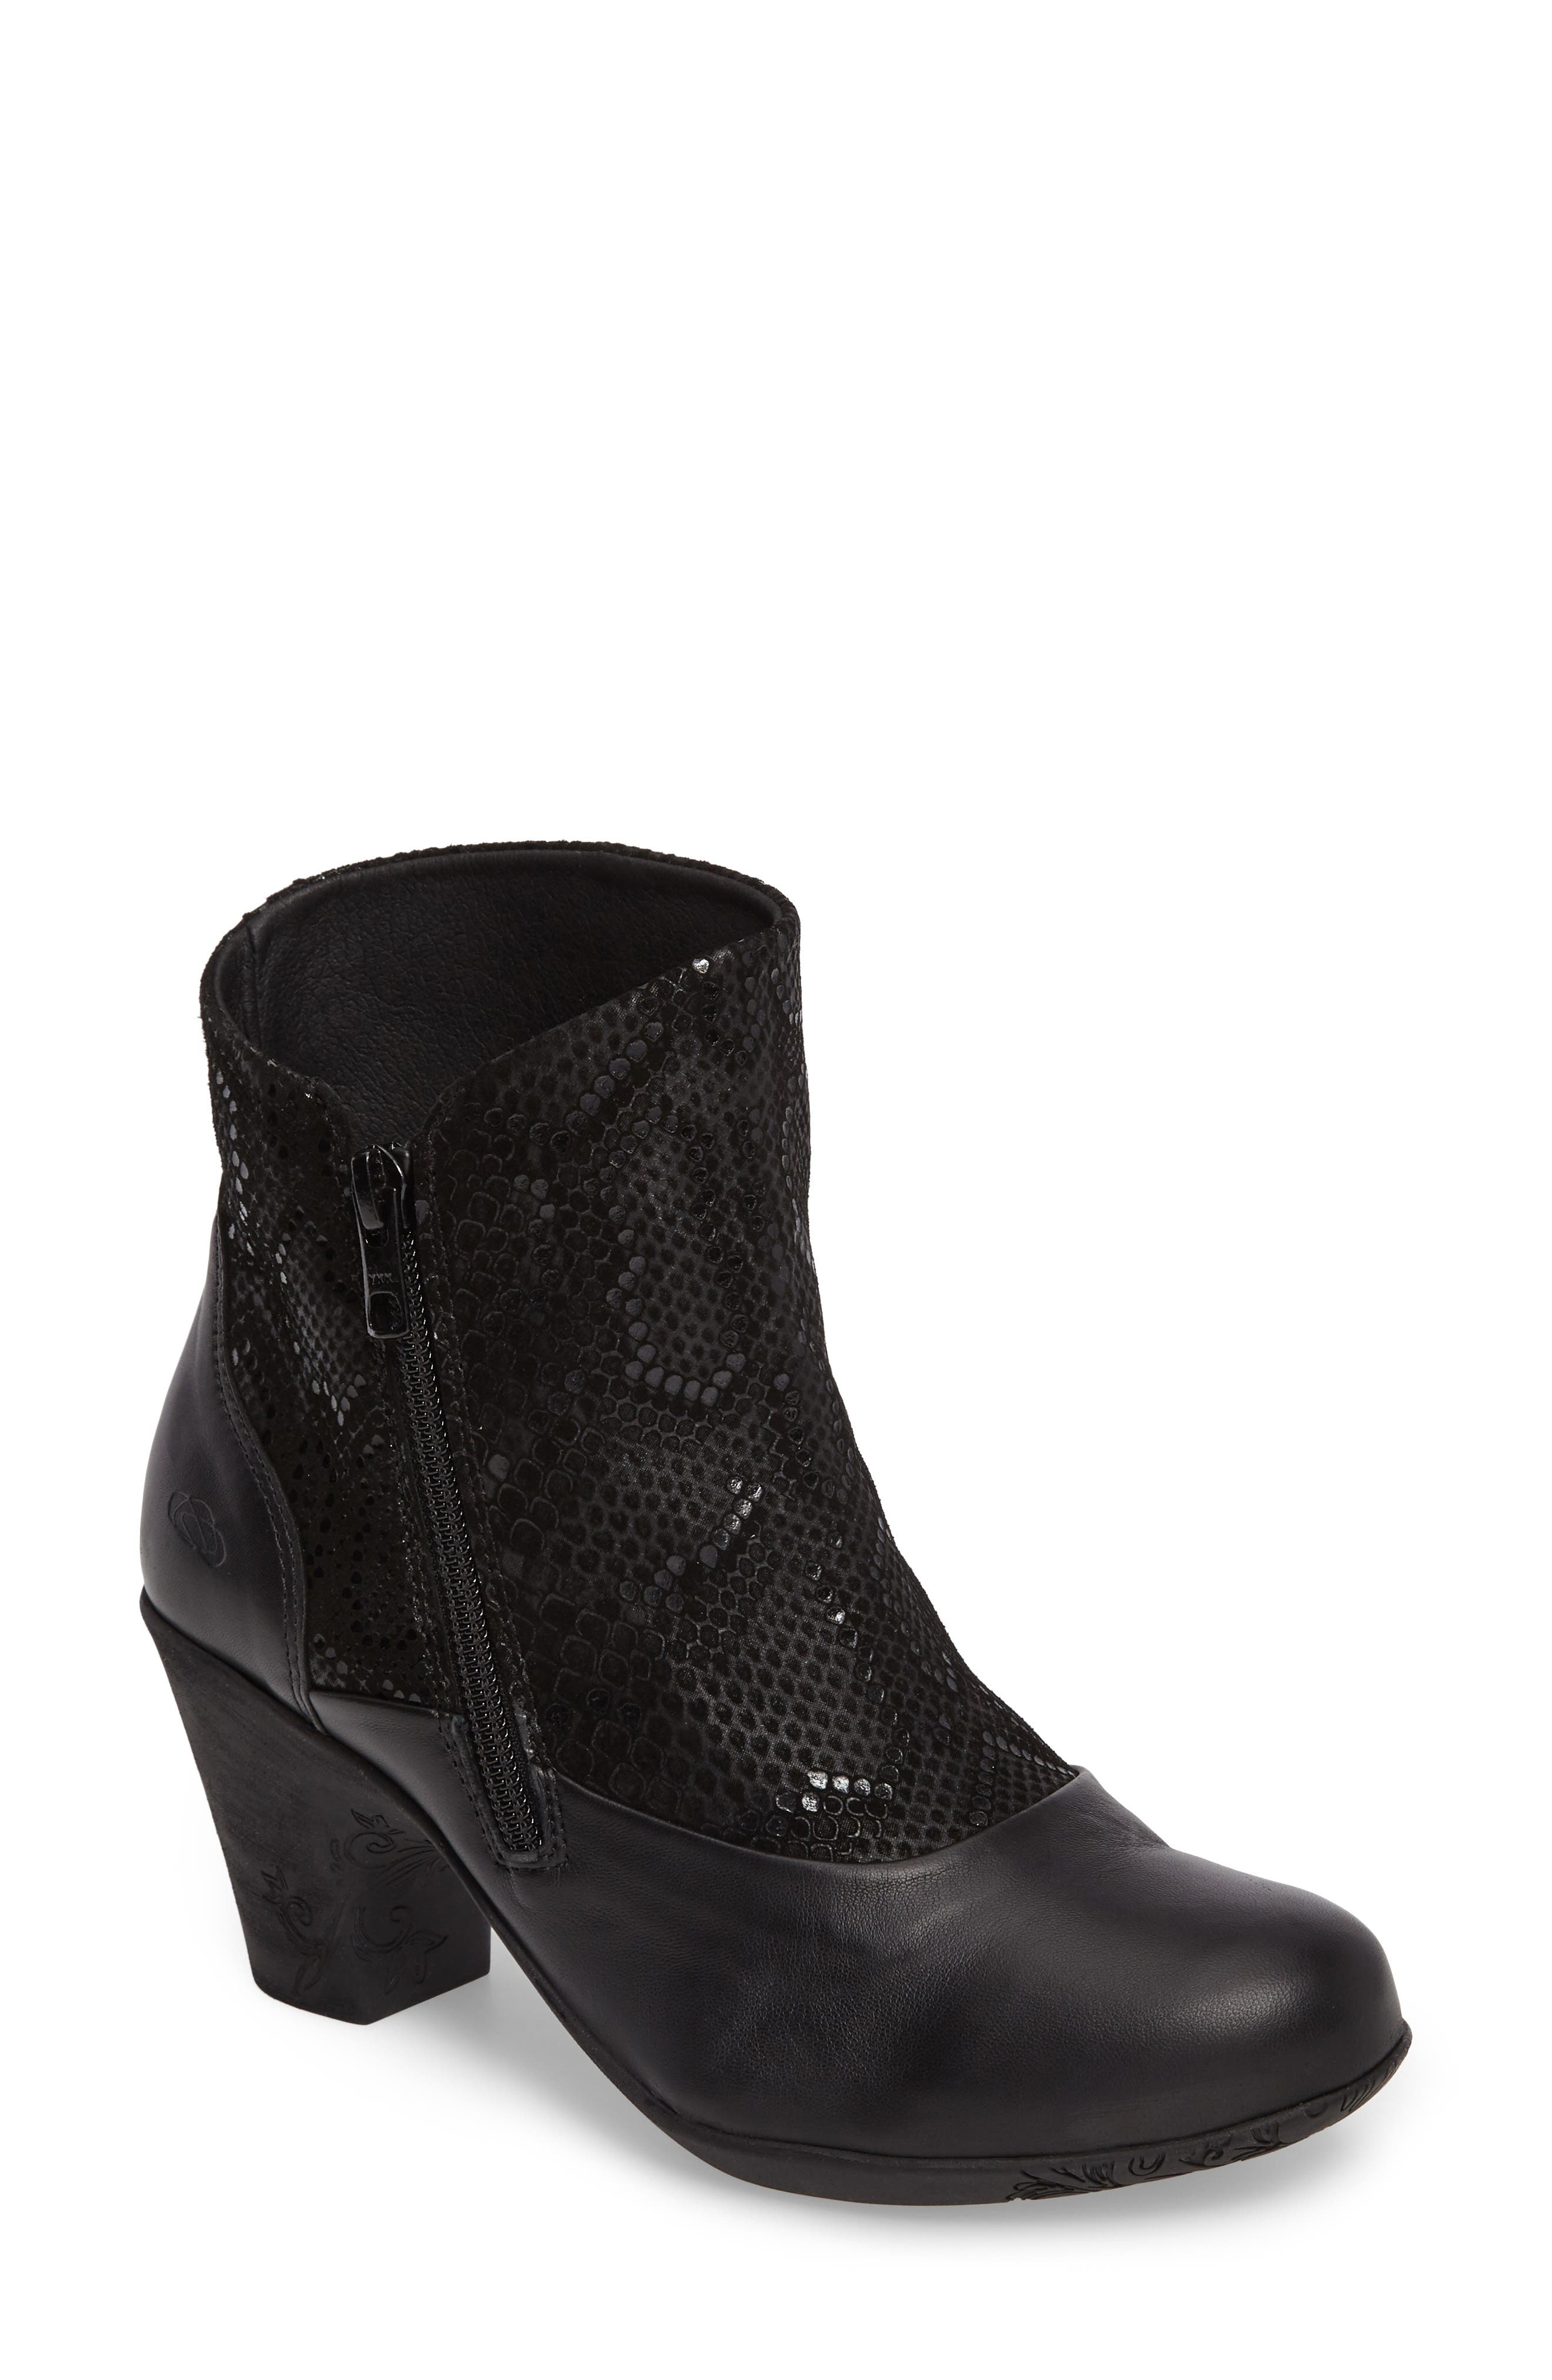 Janis Snake Embossed Bootie,                         Main,                         color, 001